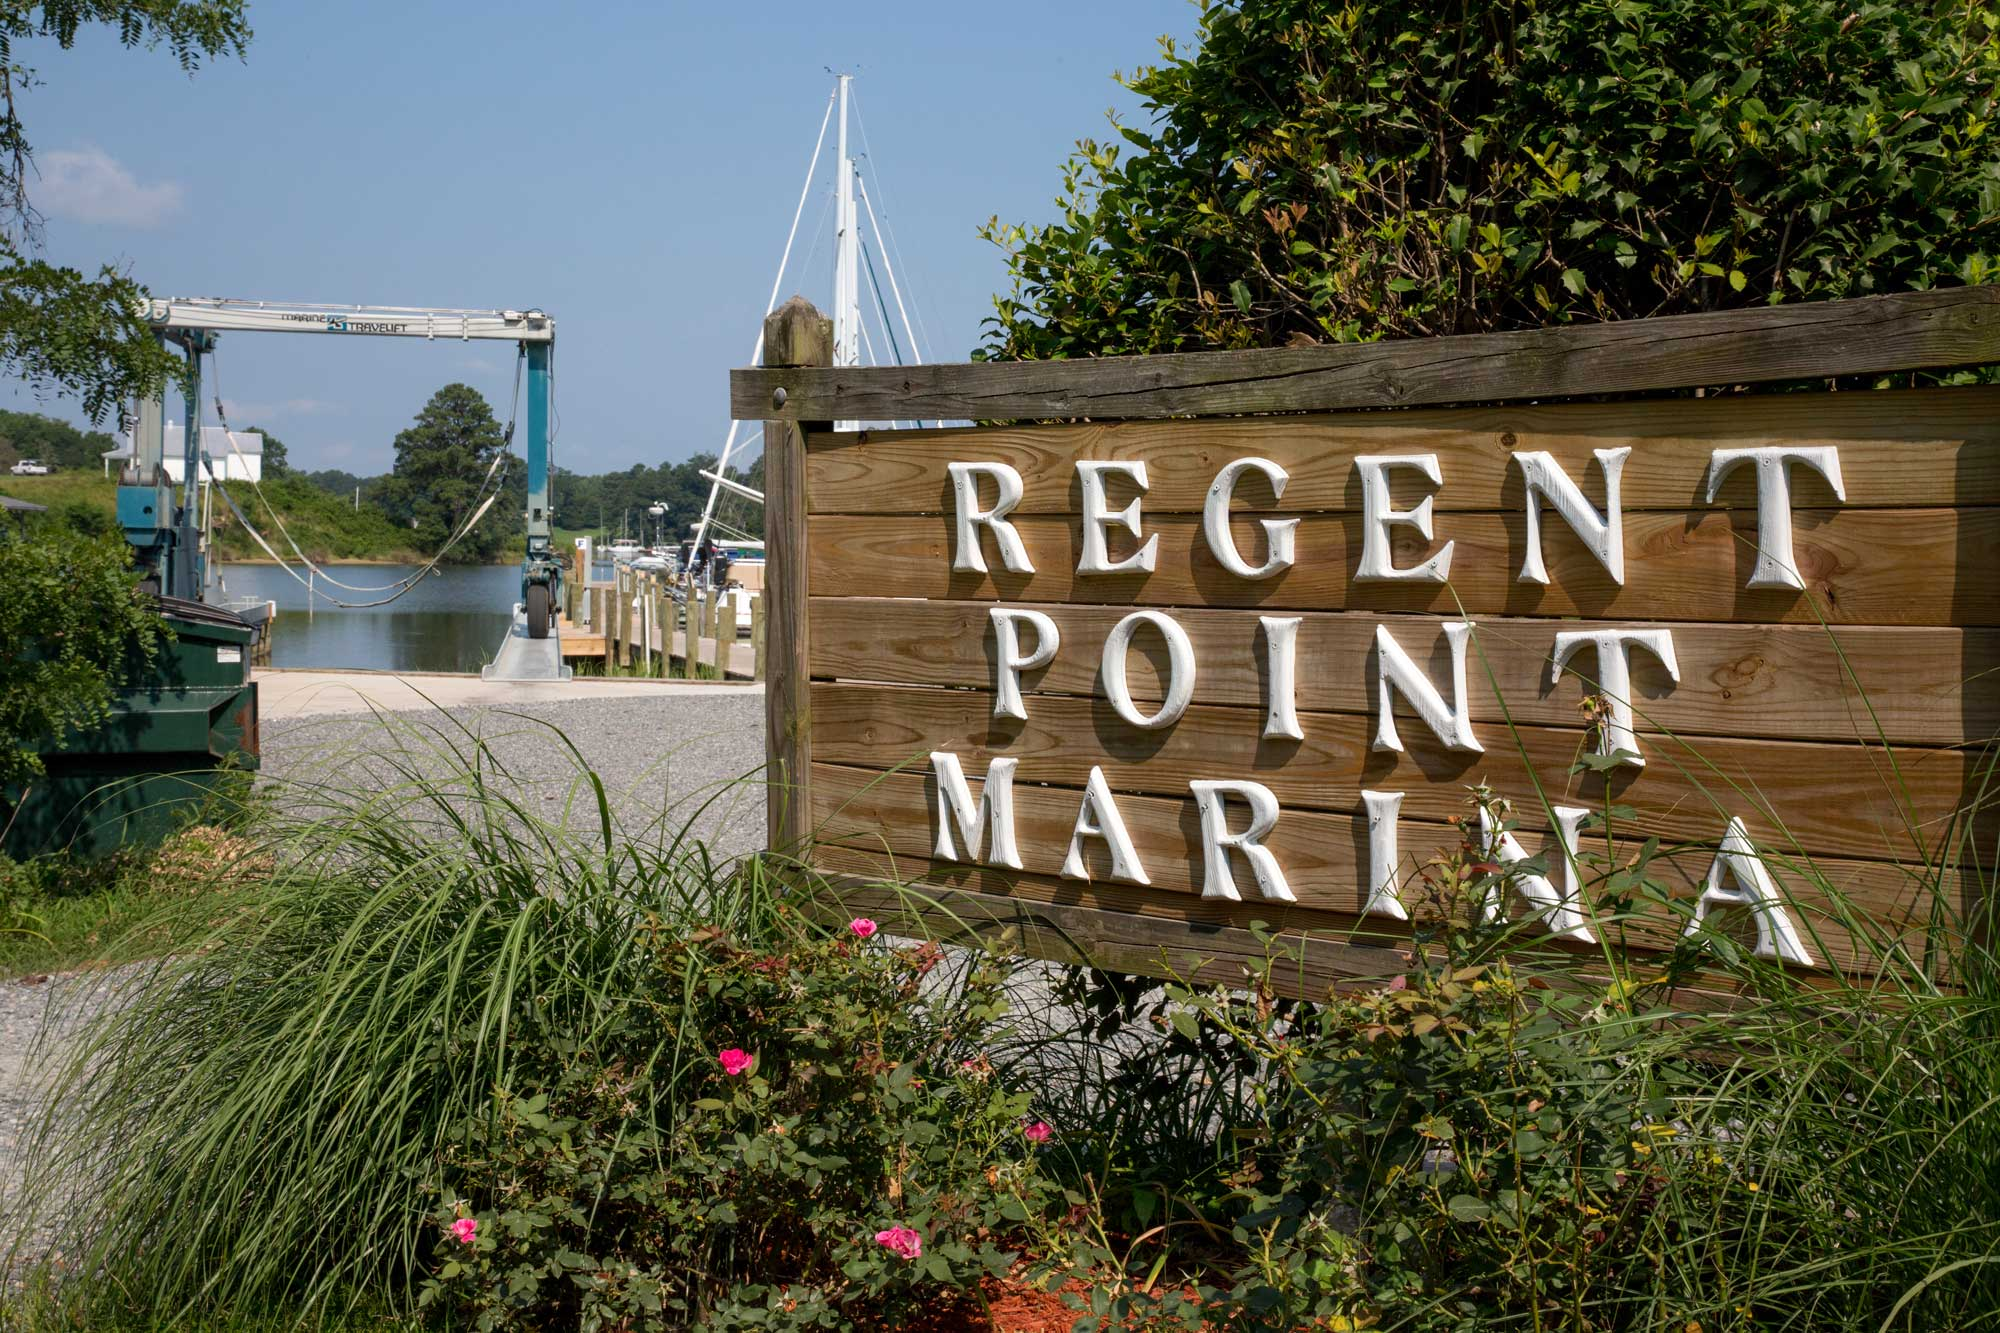 Regent Point Marina main sign by boathouse